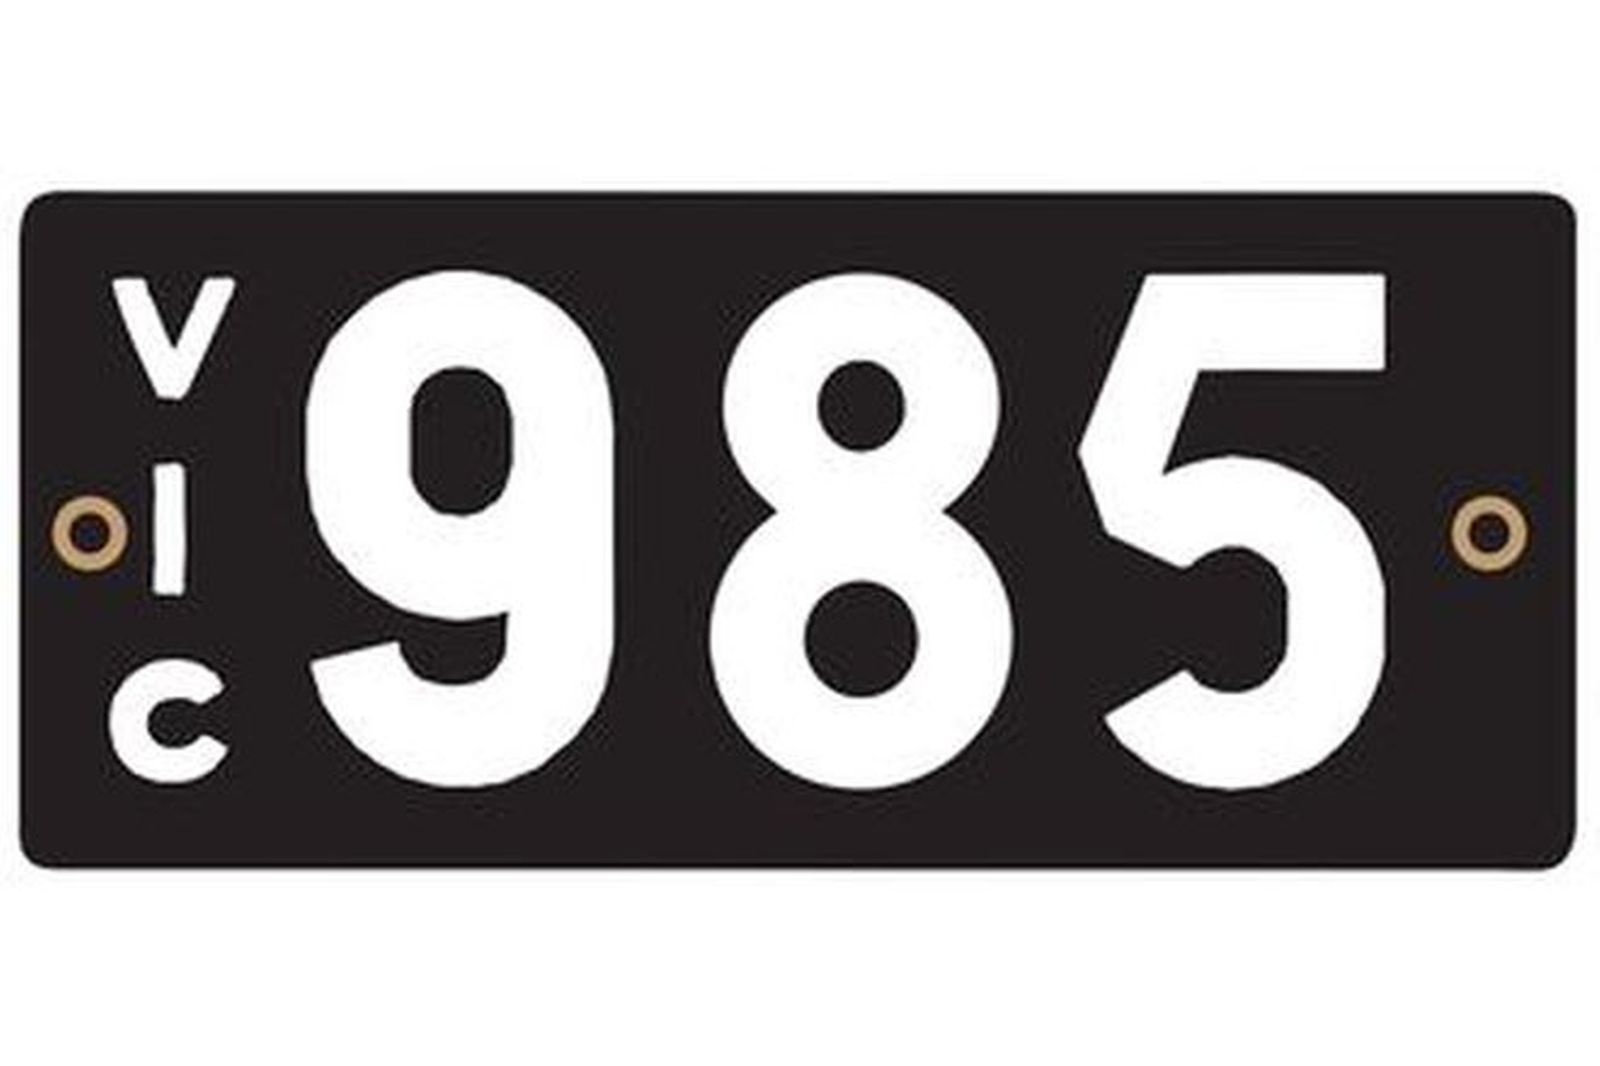 Victorian Heritage Number Plates '985'